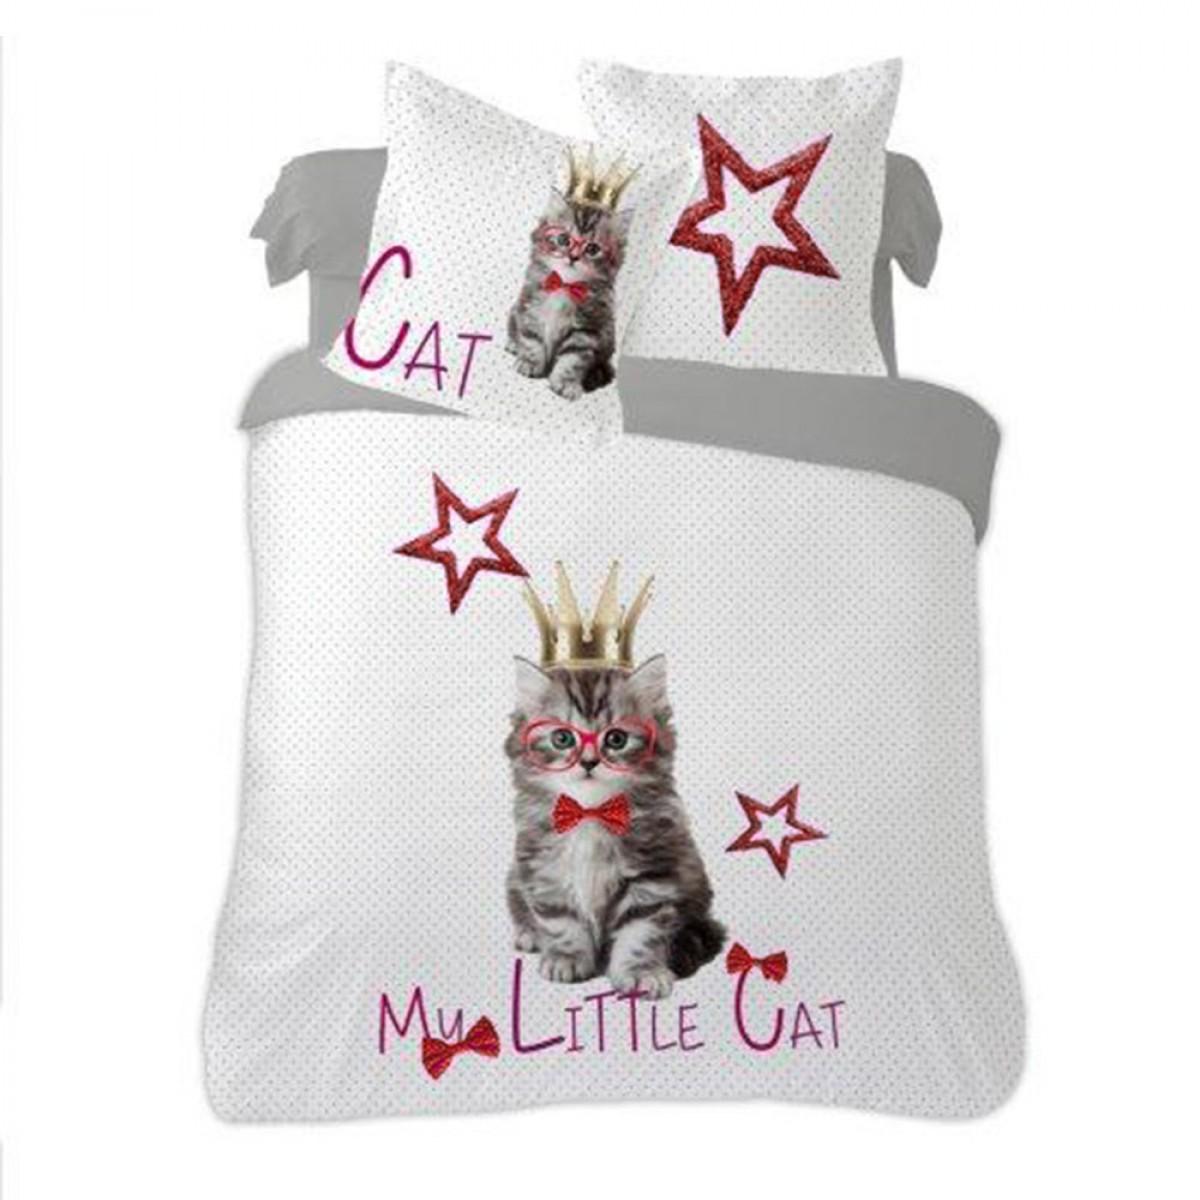 housse de couette little cat 220x240 cm en flanelle les douces nuits de ma linge de maison. Black Bedroom Furniture Sets. Home Design Ideas